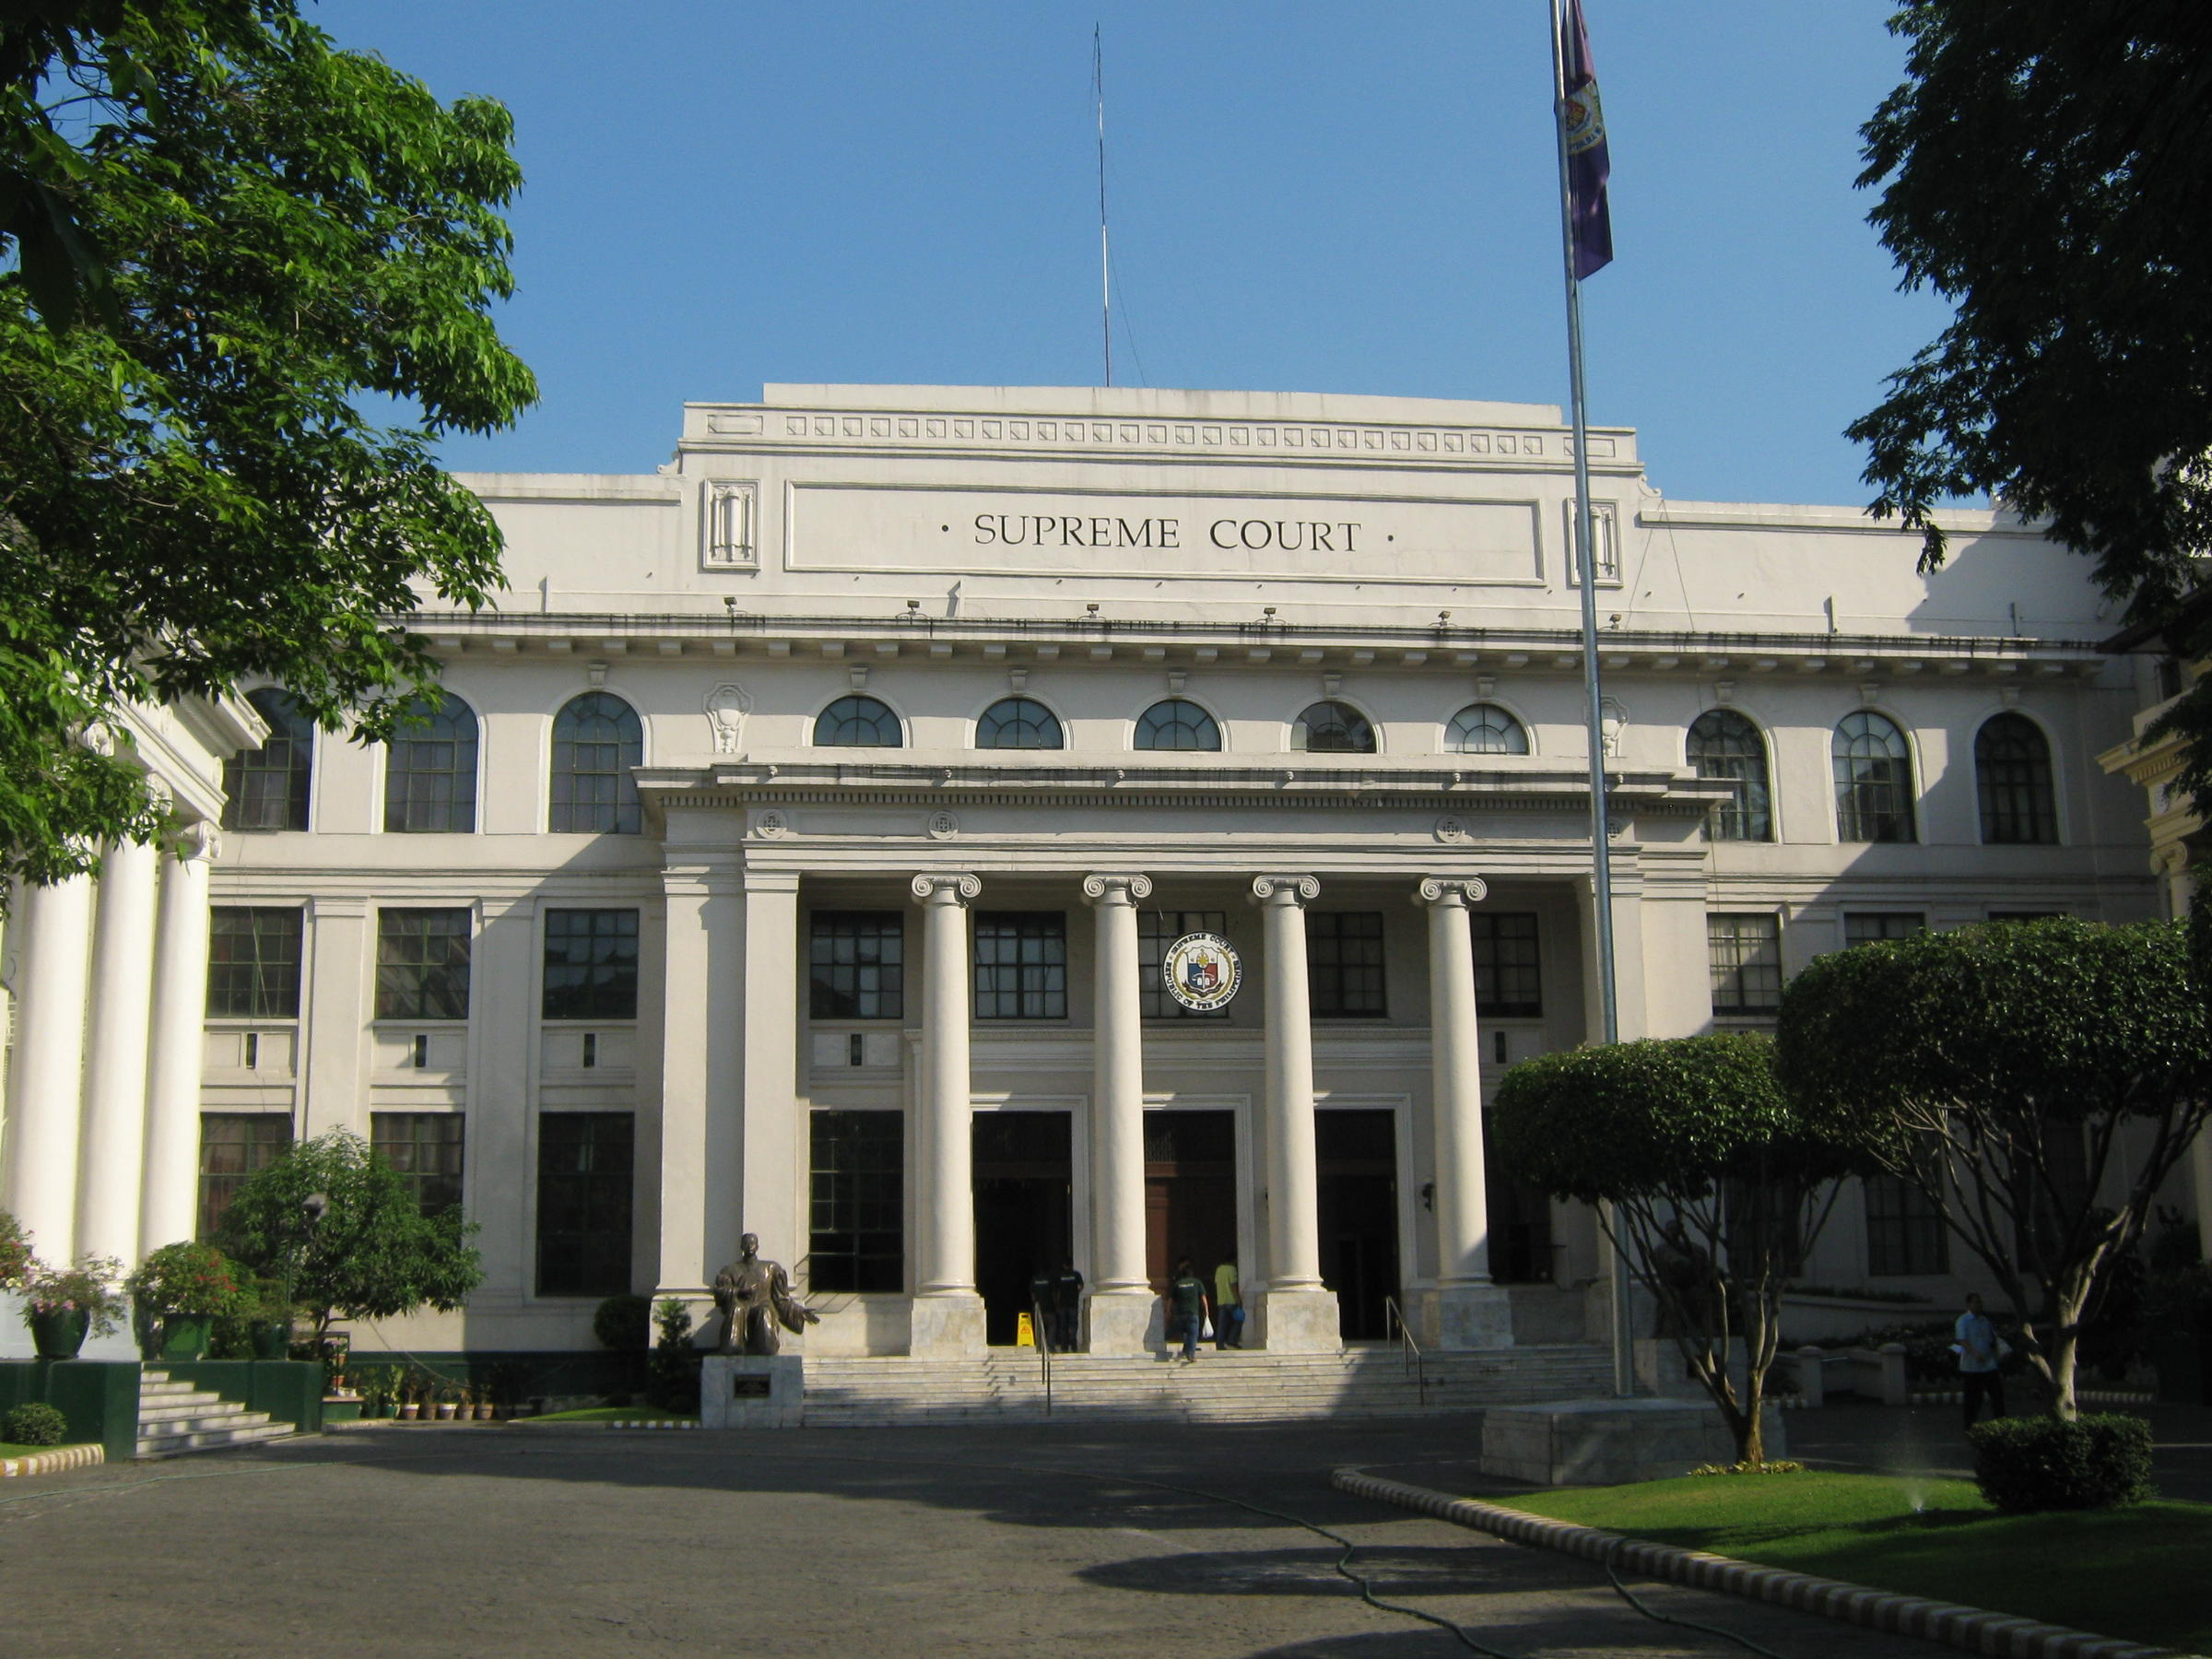 The Legal System of the Philippines Compared to the U.S. Legal System